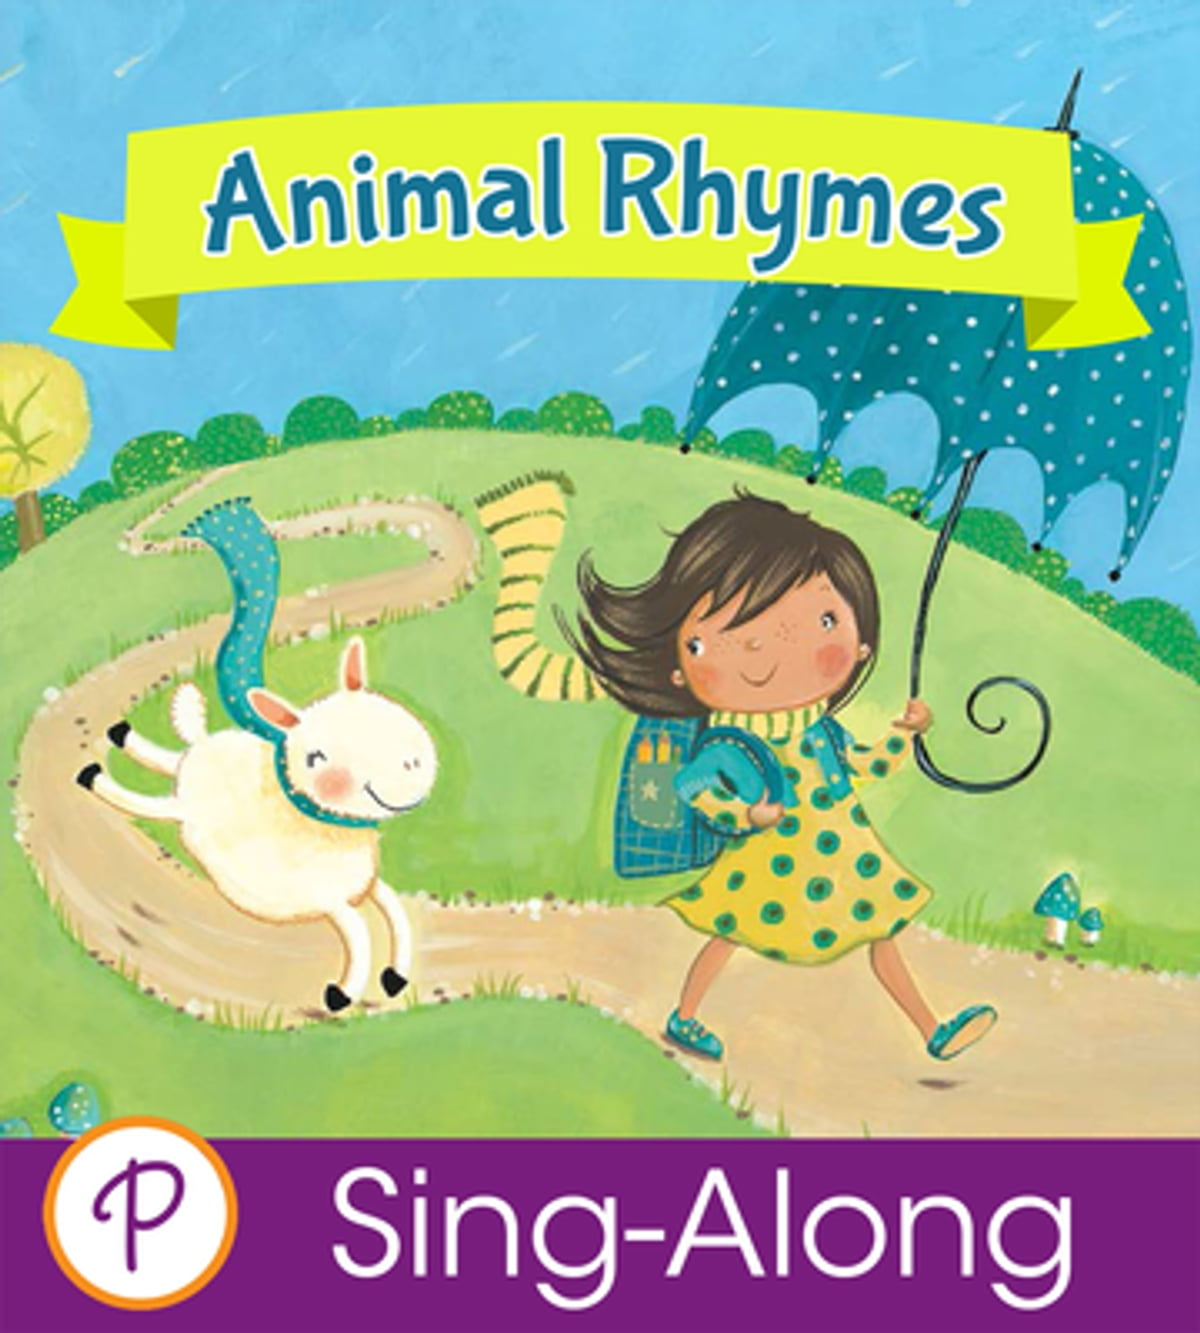 Animal rhymes ebook by parragon books ltd 9781472369888 animal rhymes ebook by parragon books ltd 9781472369888 rakuten kobo fandeluxe Document